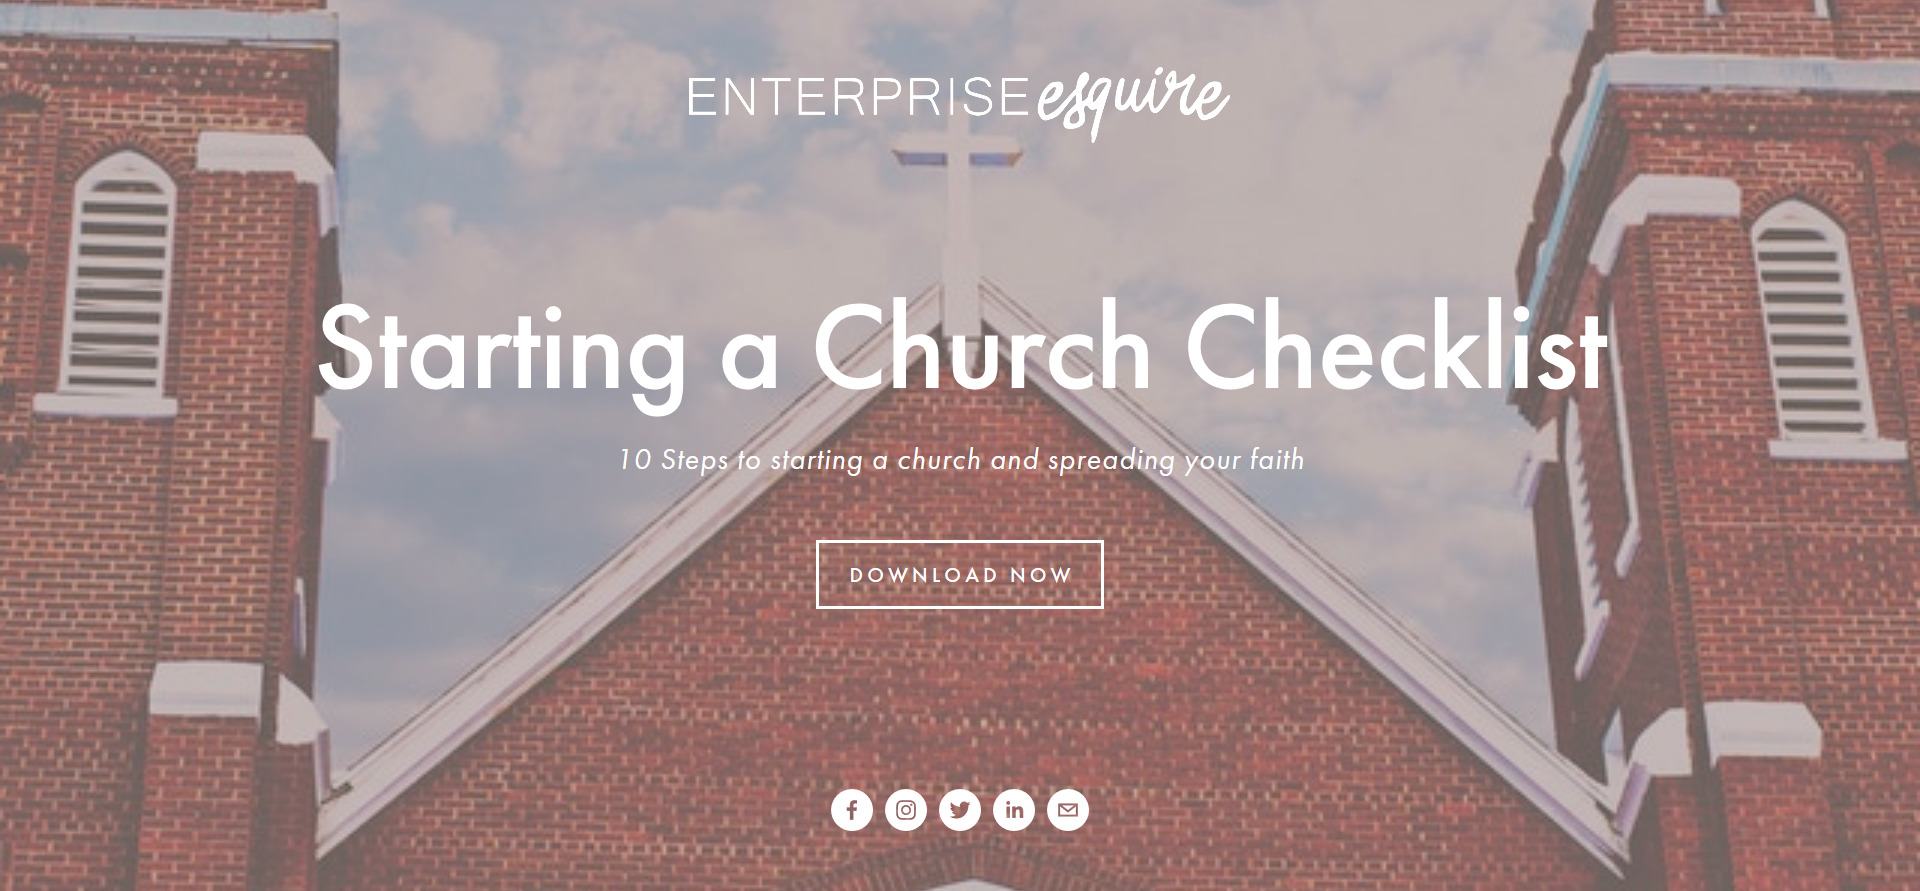 Download Our Starting a Church Checklist